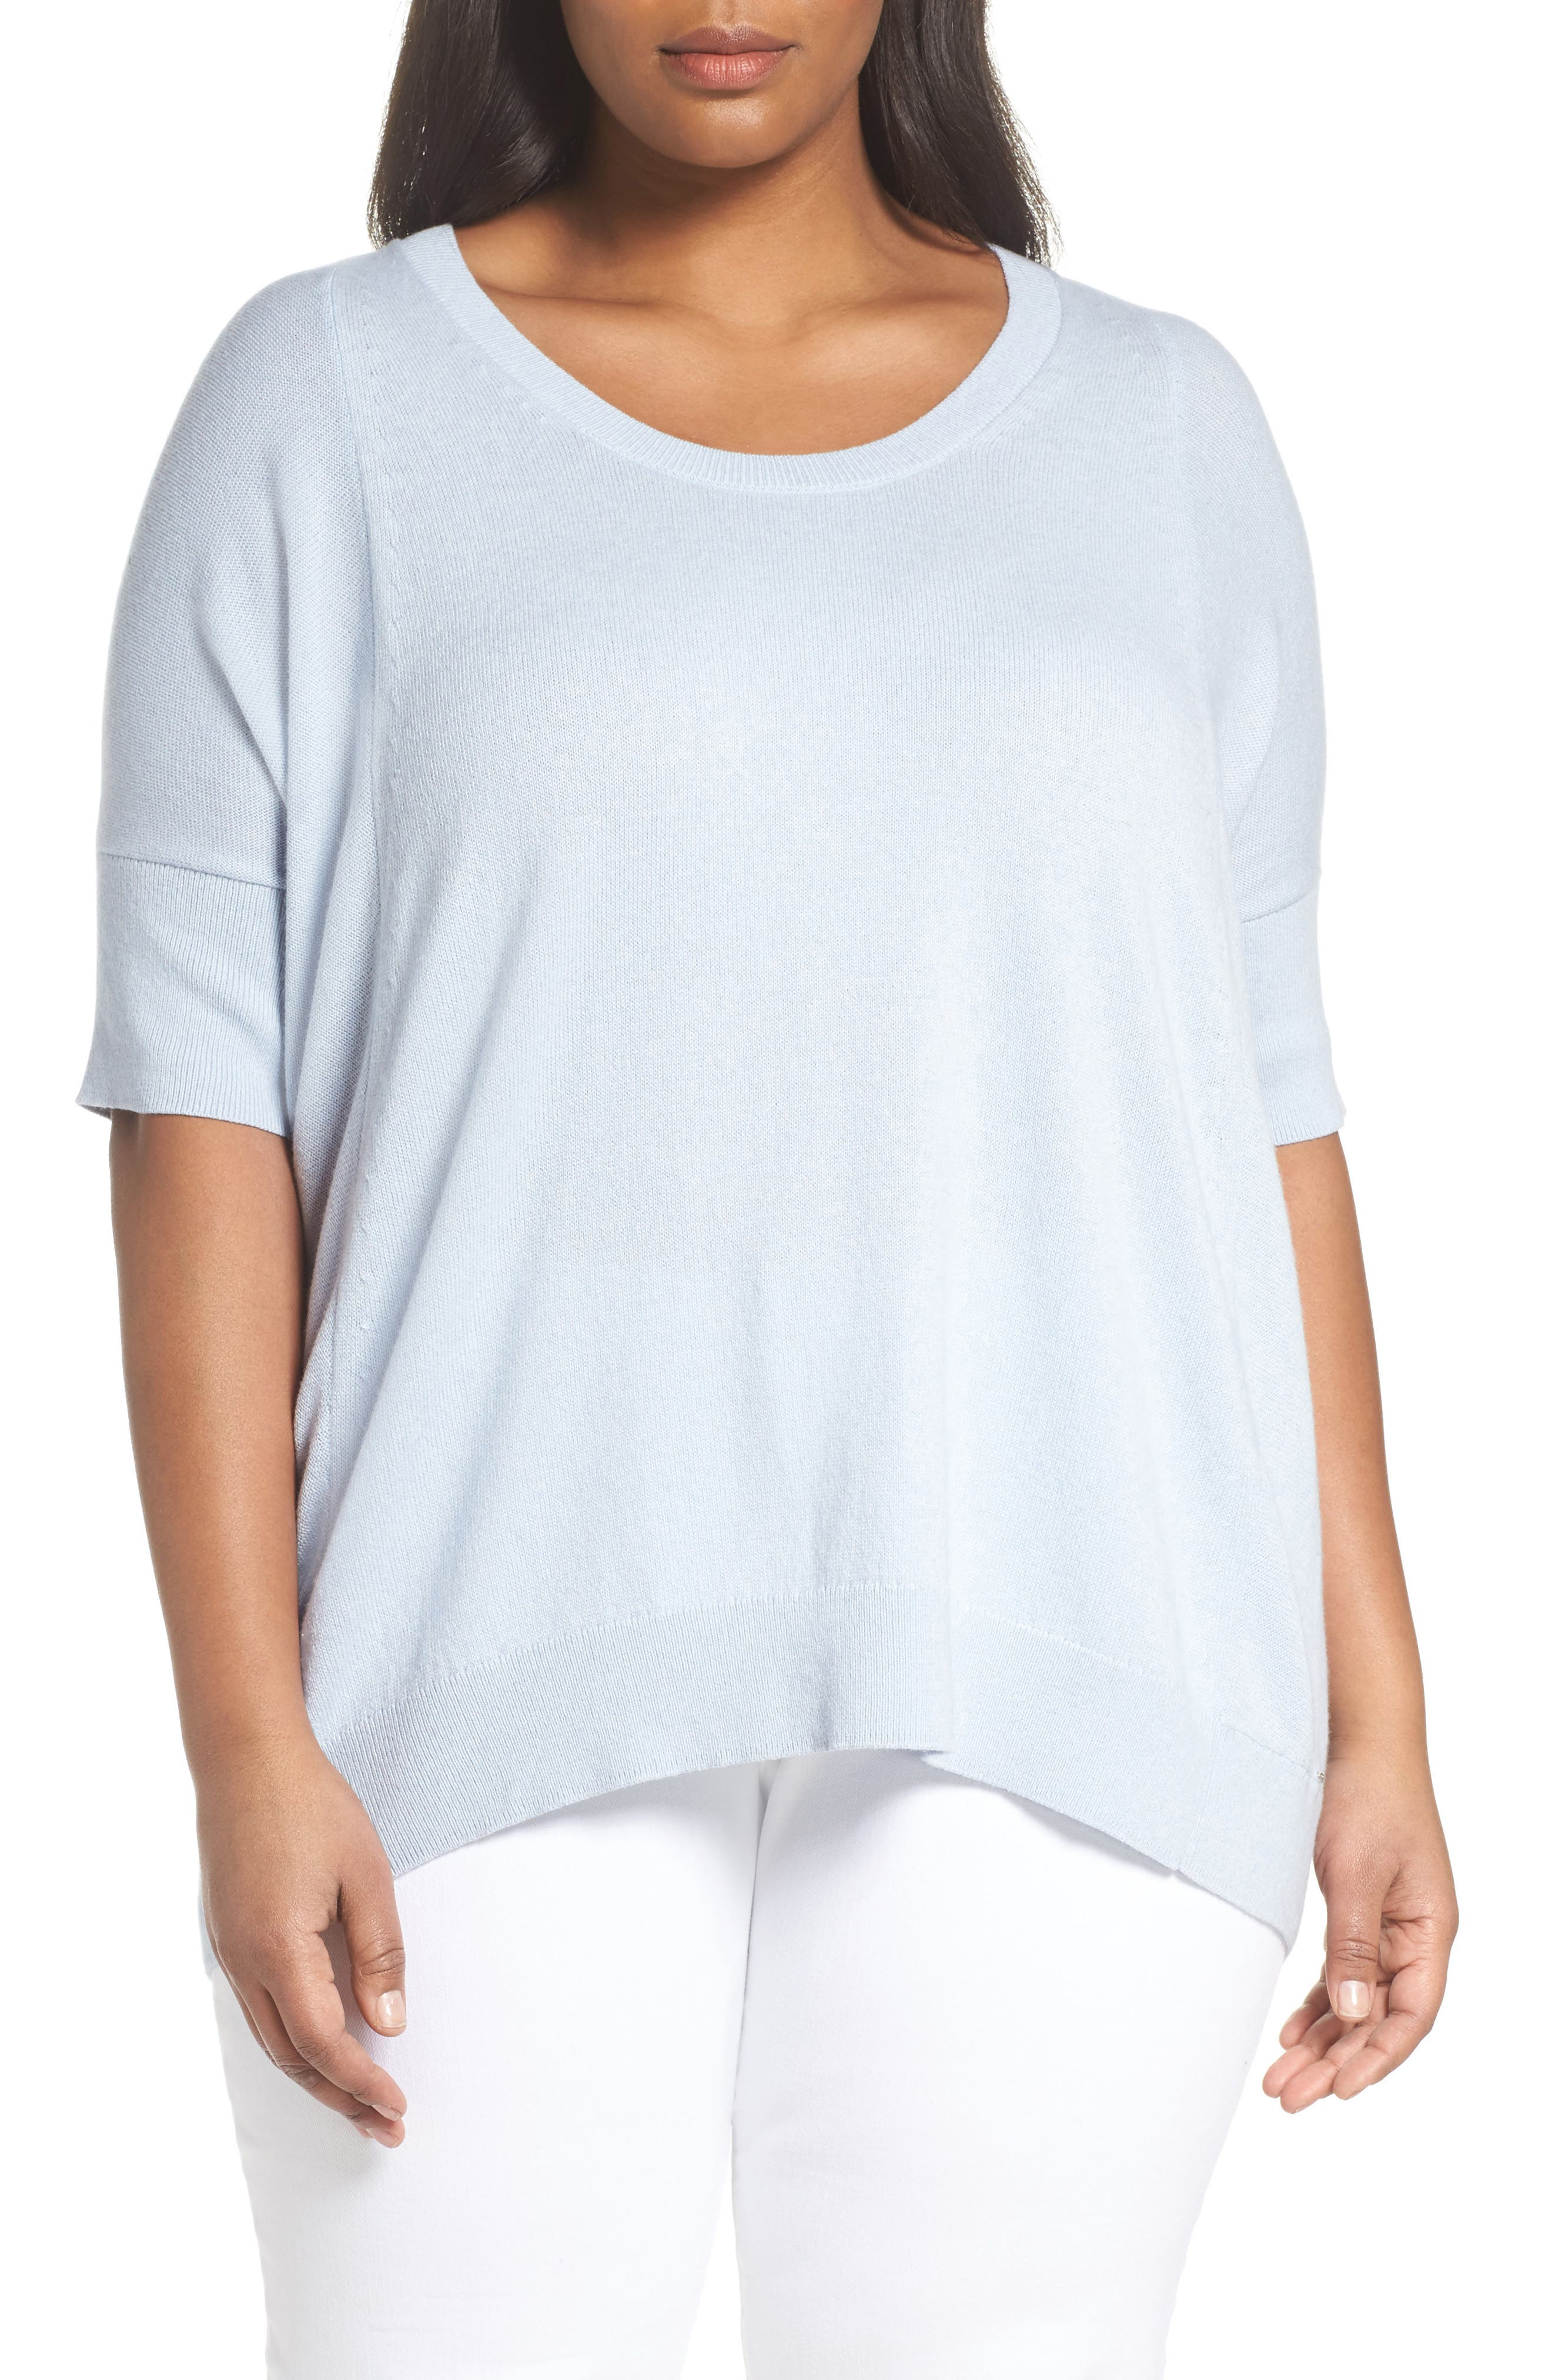 LAFAYETTE 148 NEW YORK Cotton, Cashmere & Silk Oversized Scoop Neck Sweater, Main, color, 400